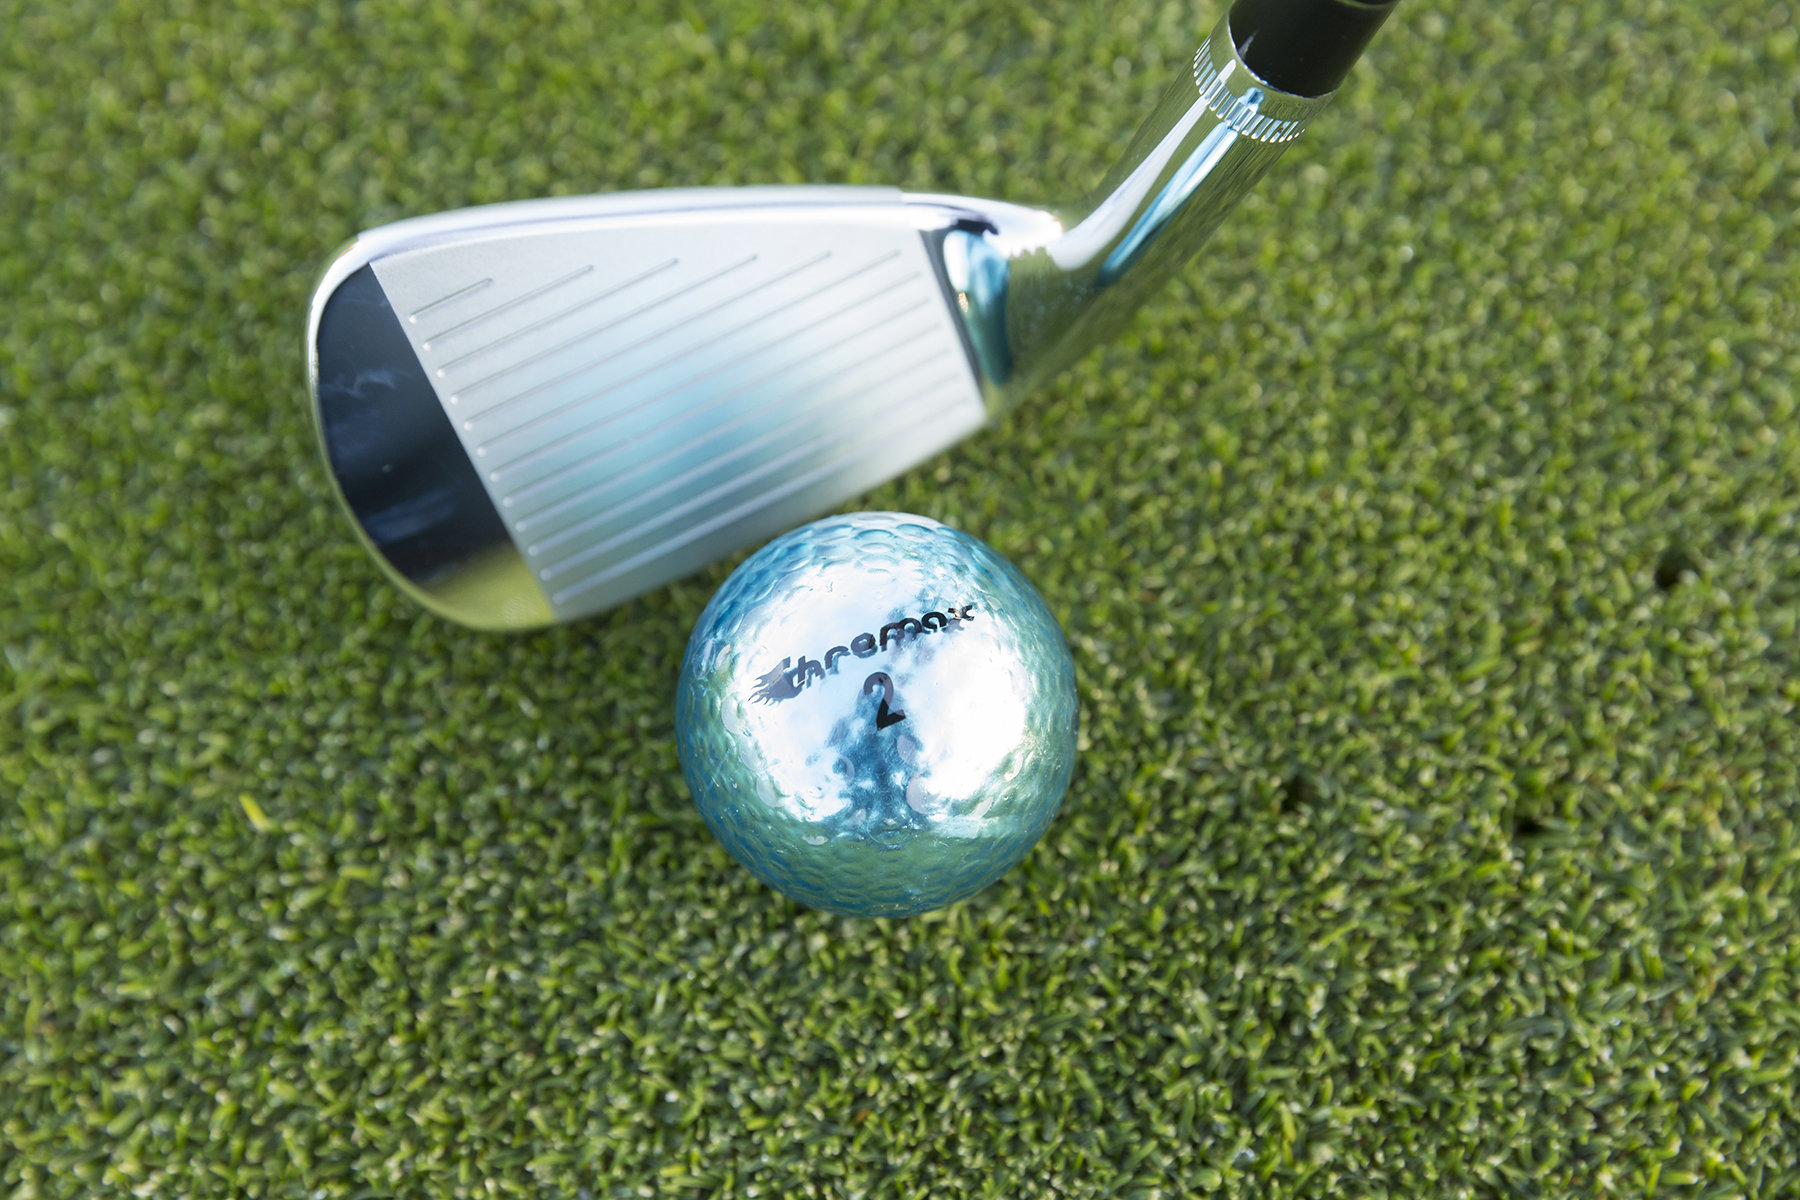 Chromax blue golf ball with wedge